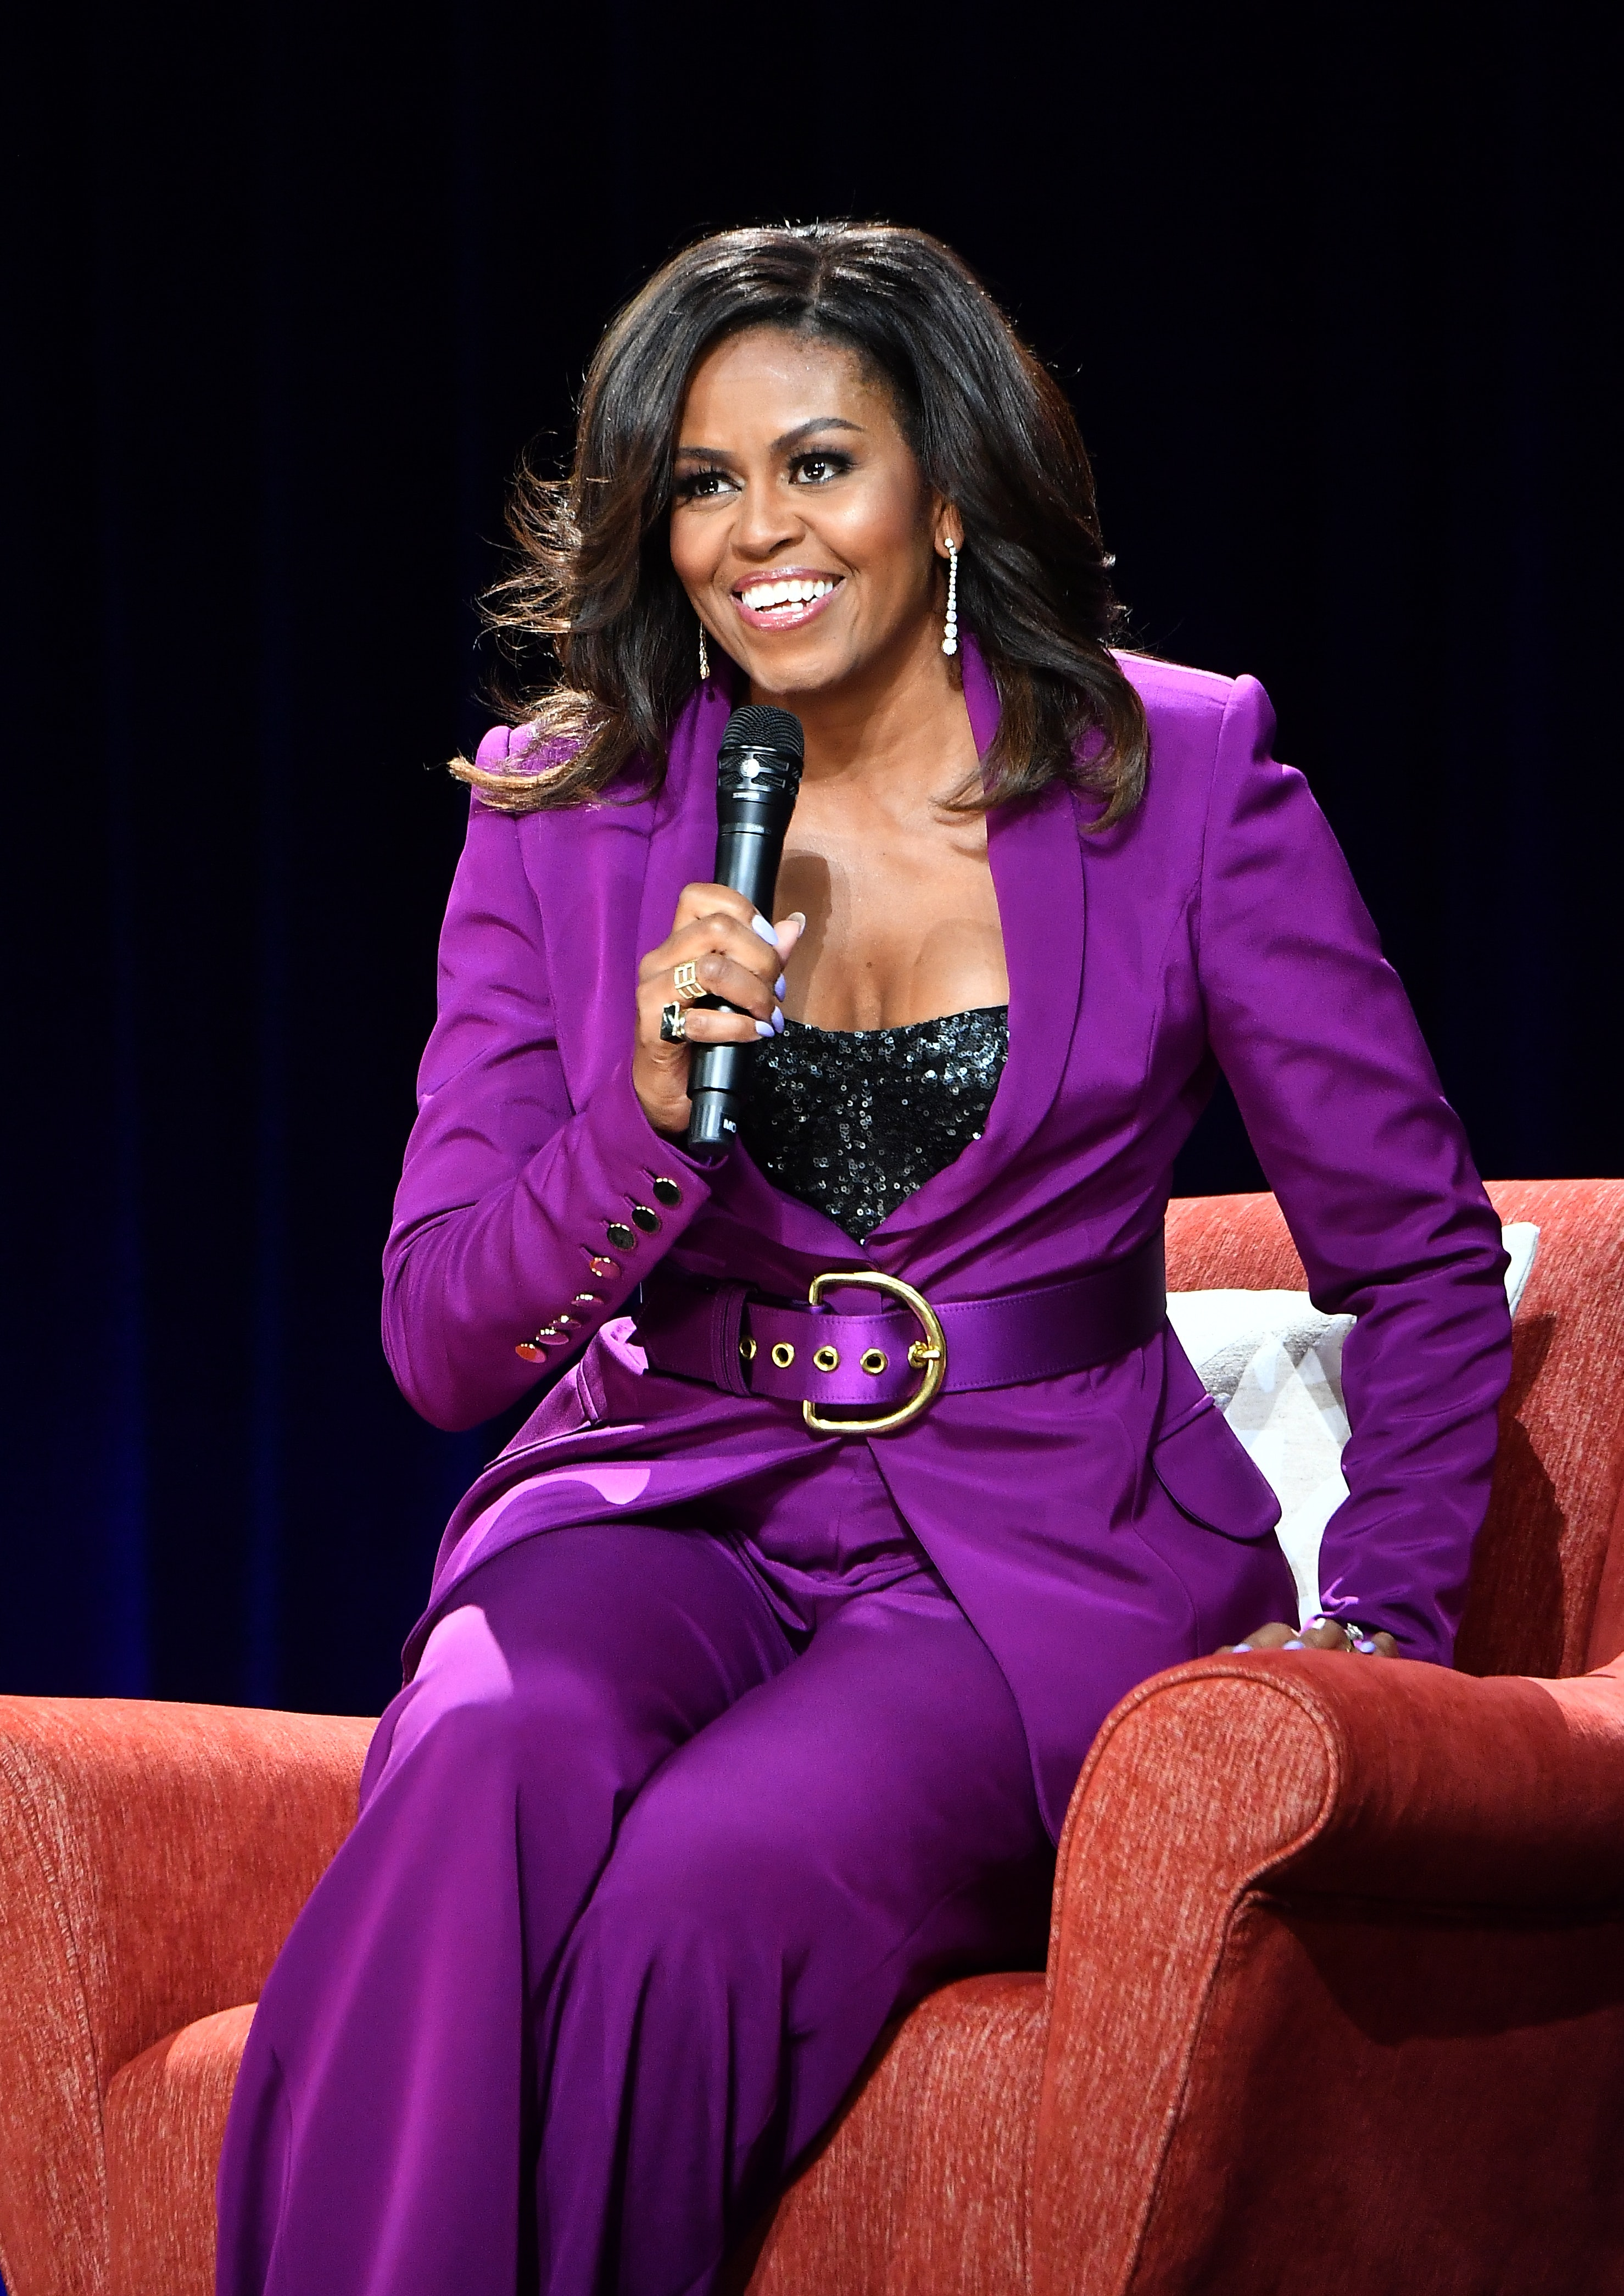 Michelle Obama's 2019 American Portrait Gala Look Featured ...iaparelli Gown Designed Around Fall 2019's Canary Yellow Trend